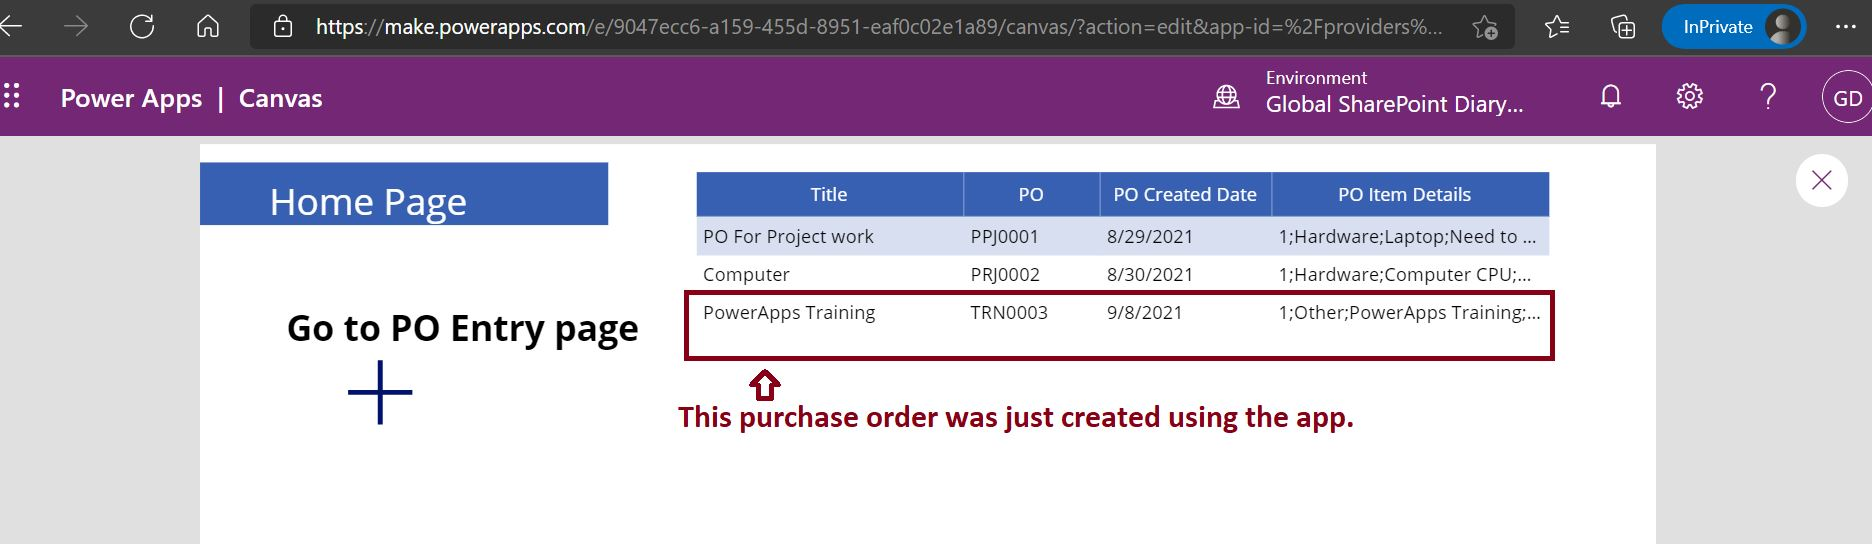 PowerApps repeating section SharePoint datatable